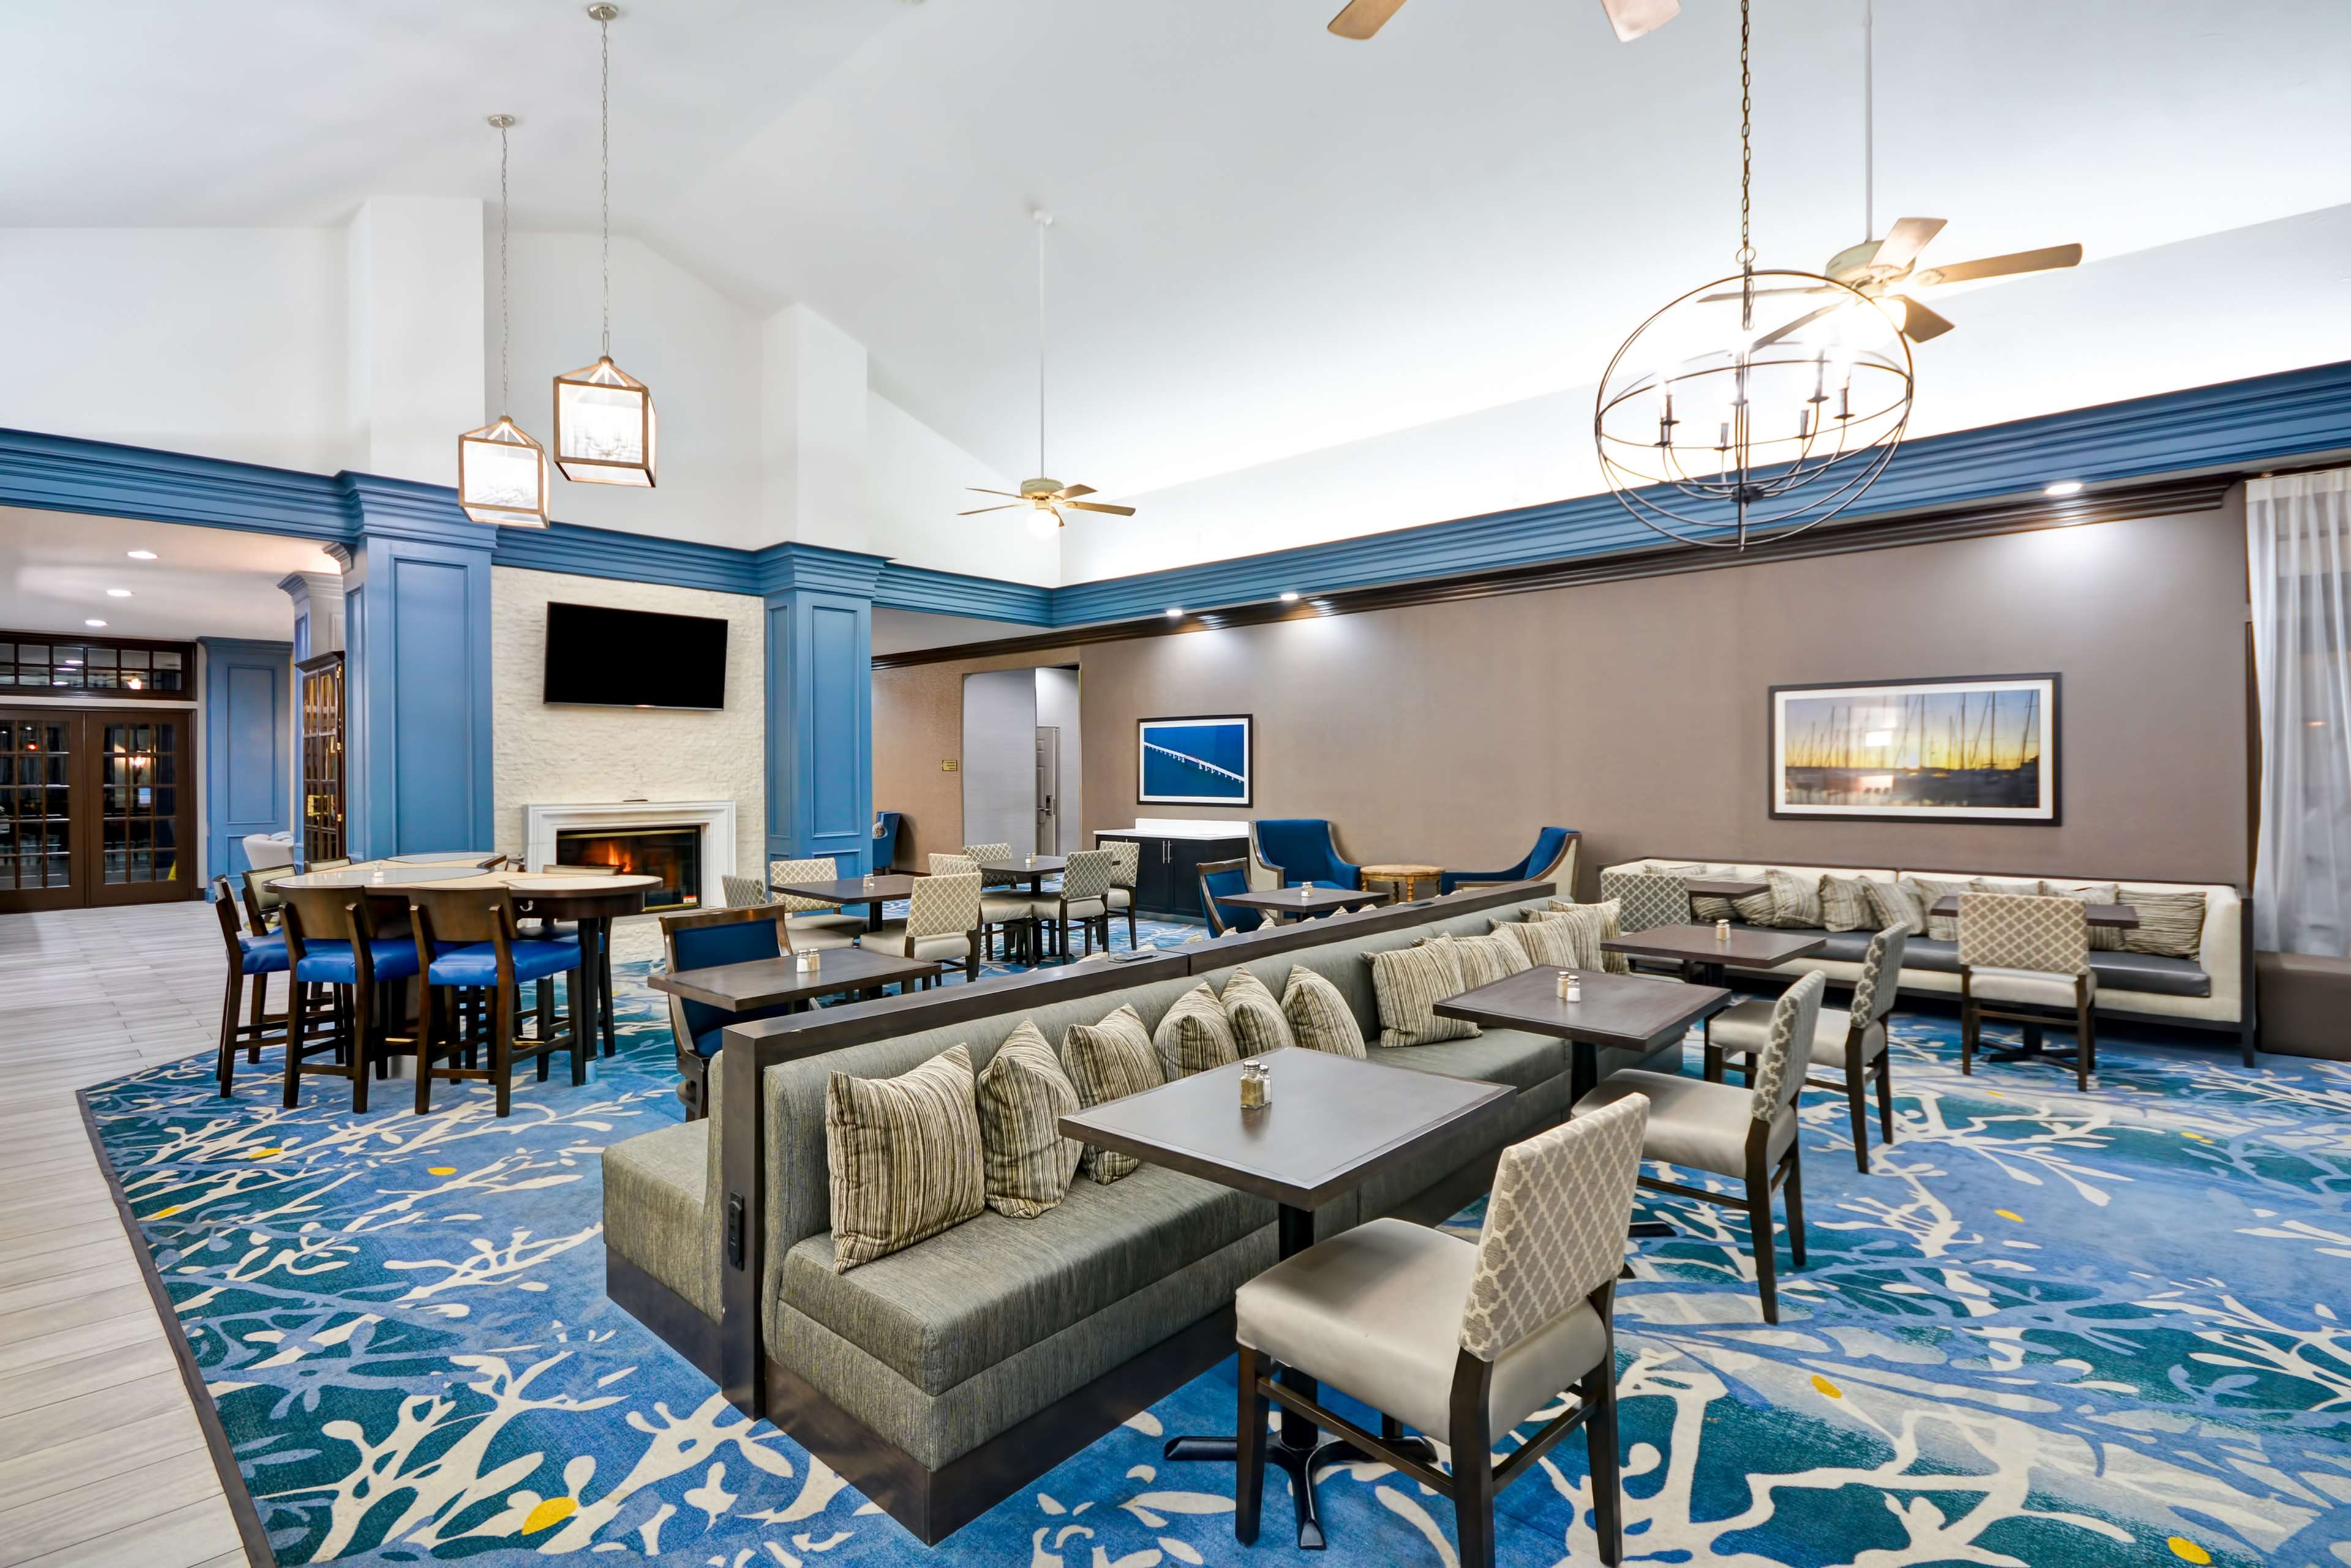 Homewood Suites by Hilton Dallas-Lewisville image 11